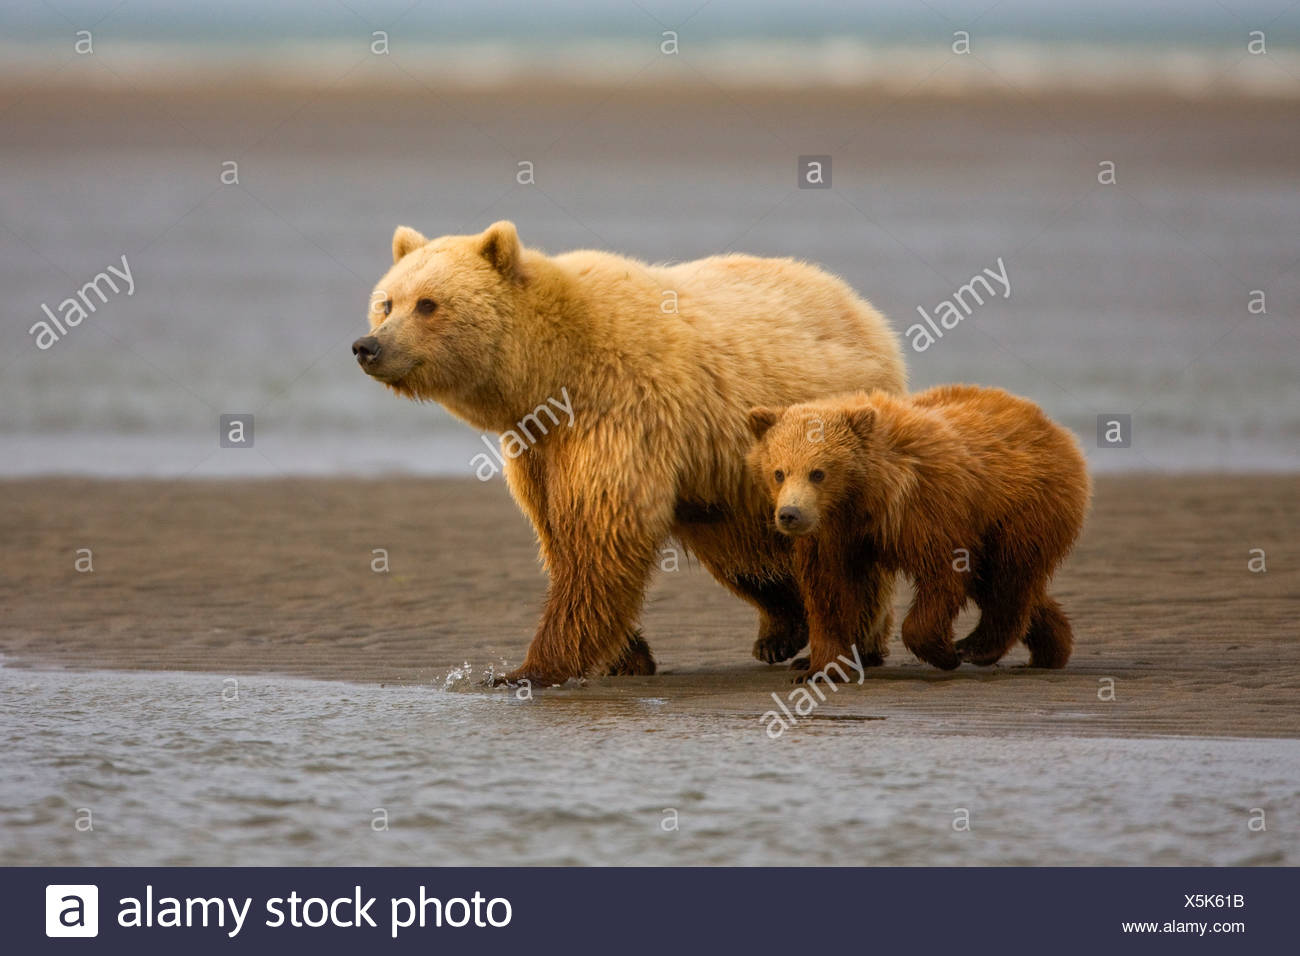 A Grizzly Bear sow with cub, Lake Clark National Park, Alaska. - Stock Image